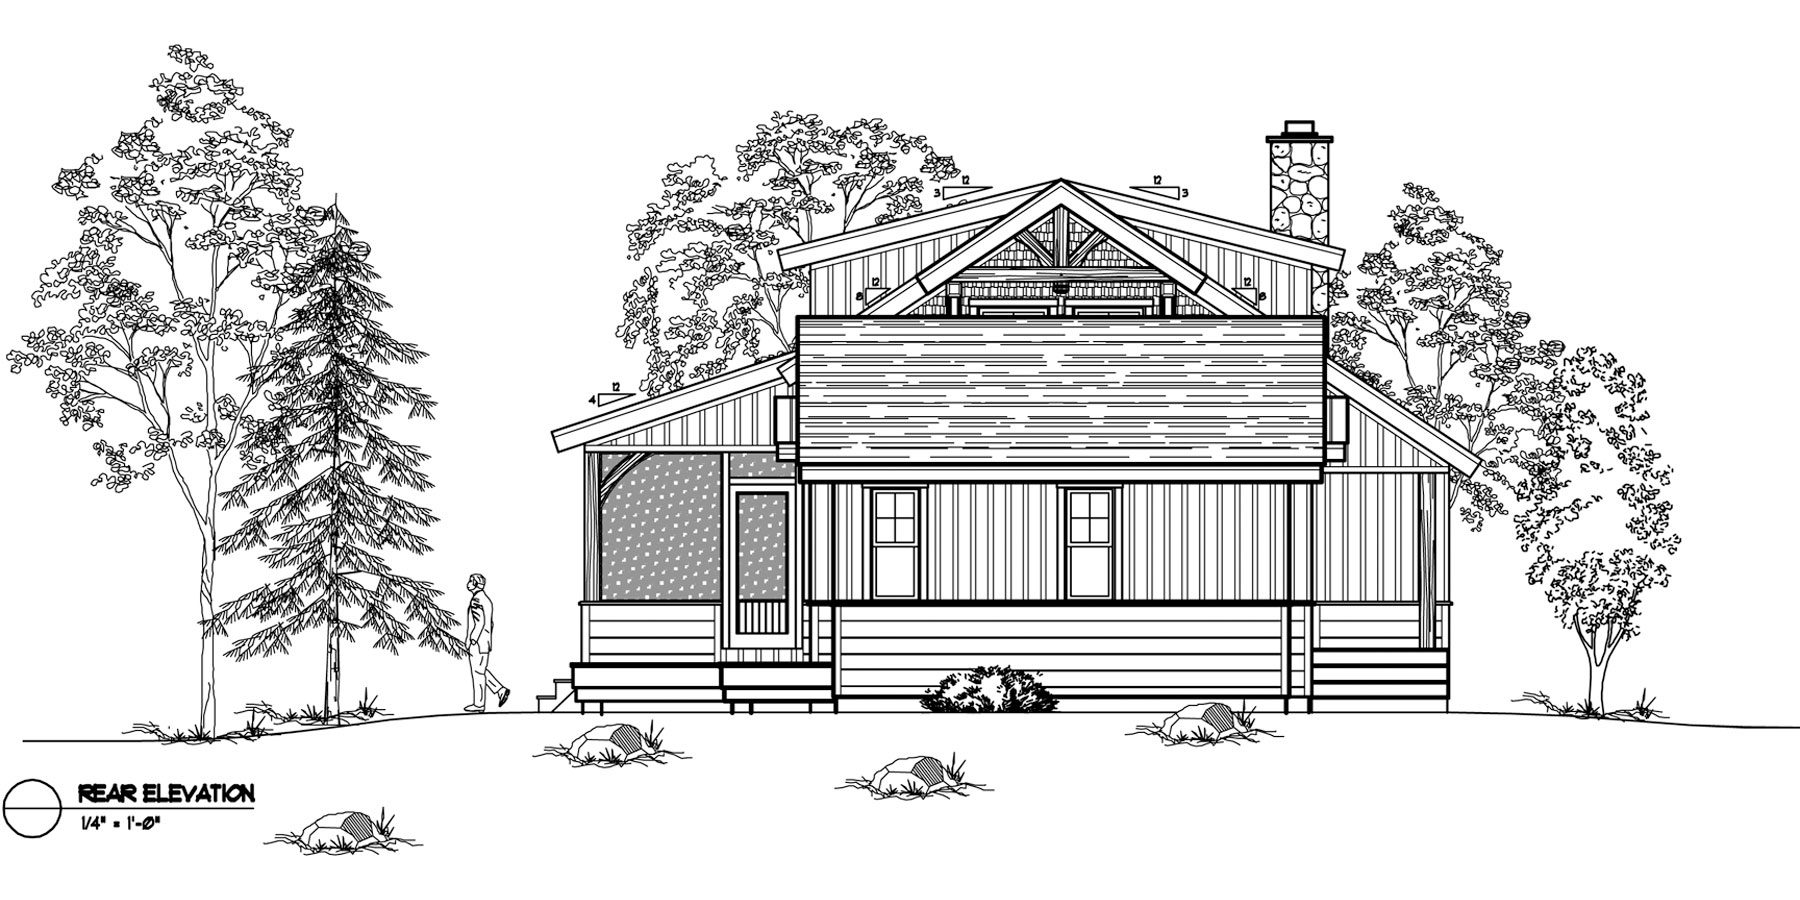 Normerica Timber Frames, House Plan, The Ranger 3575, Rear Elevation